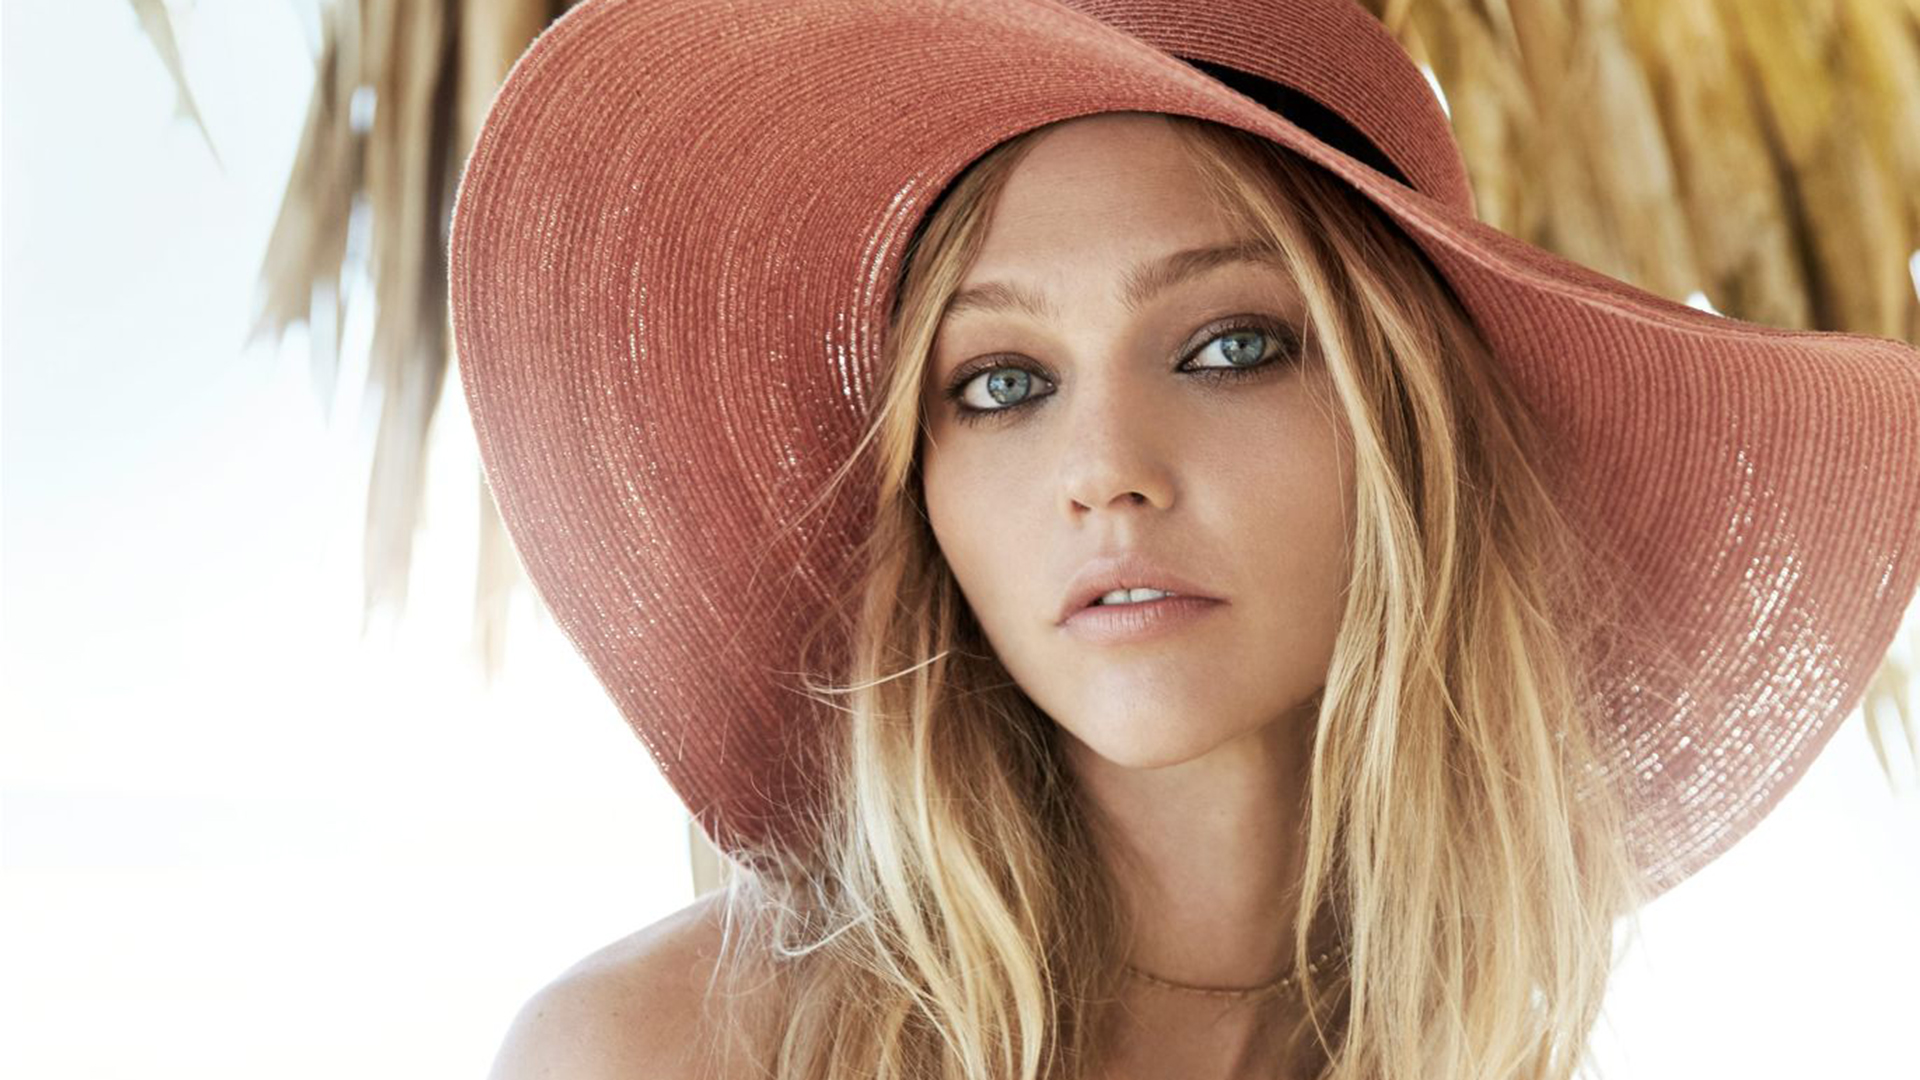 Sasha Pivovarova Backgrounds, Compatible - PC, Mobile, Gadgets| 1920x1080 px